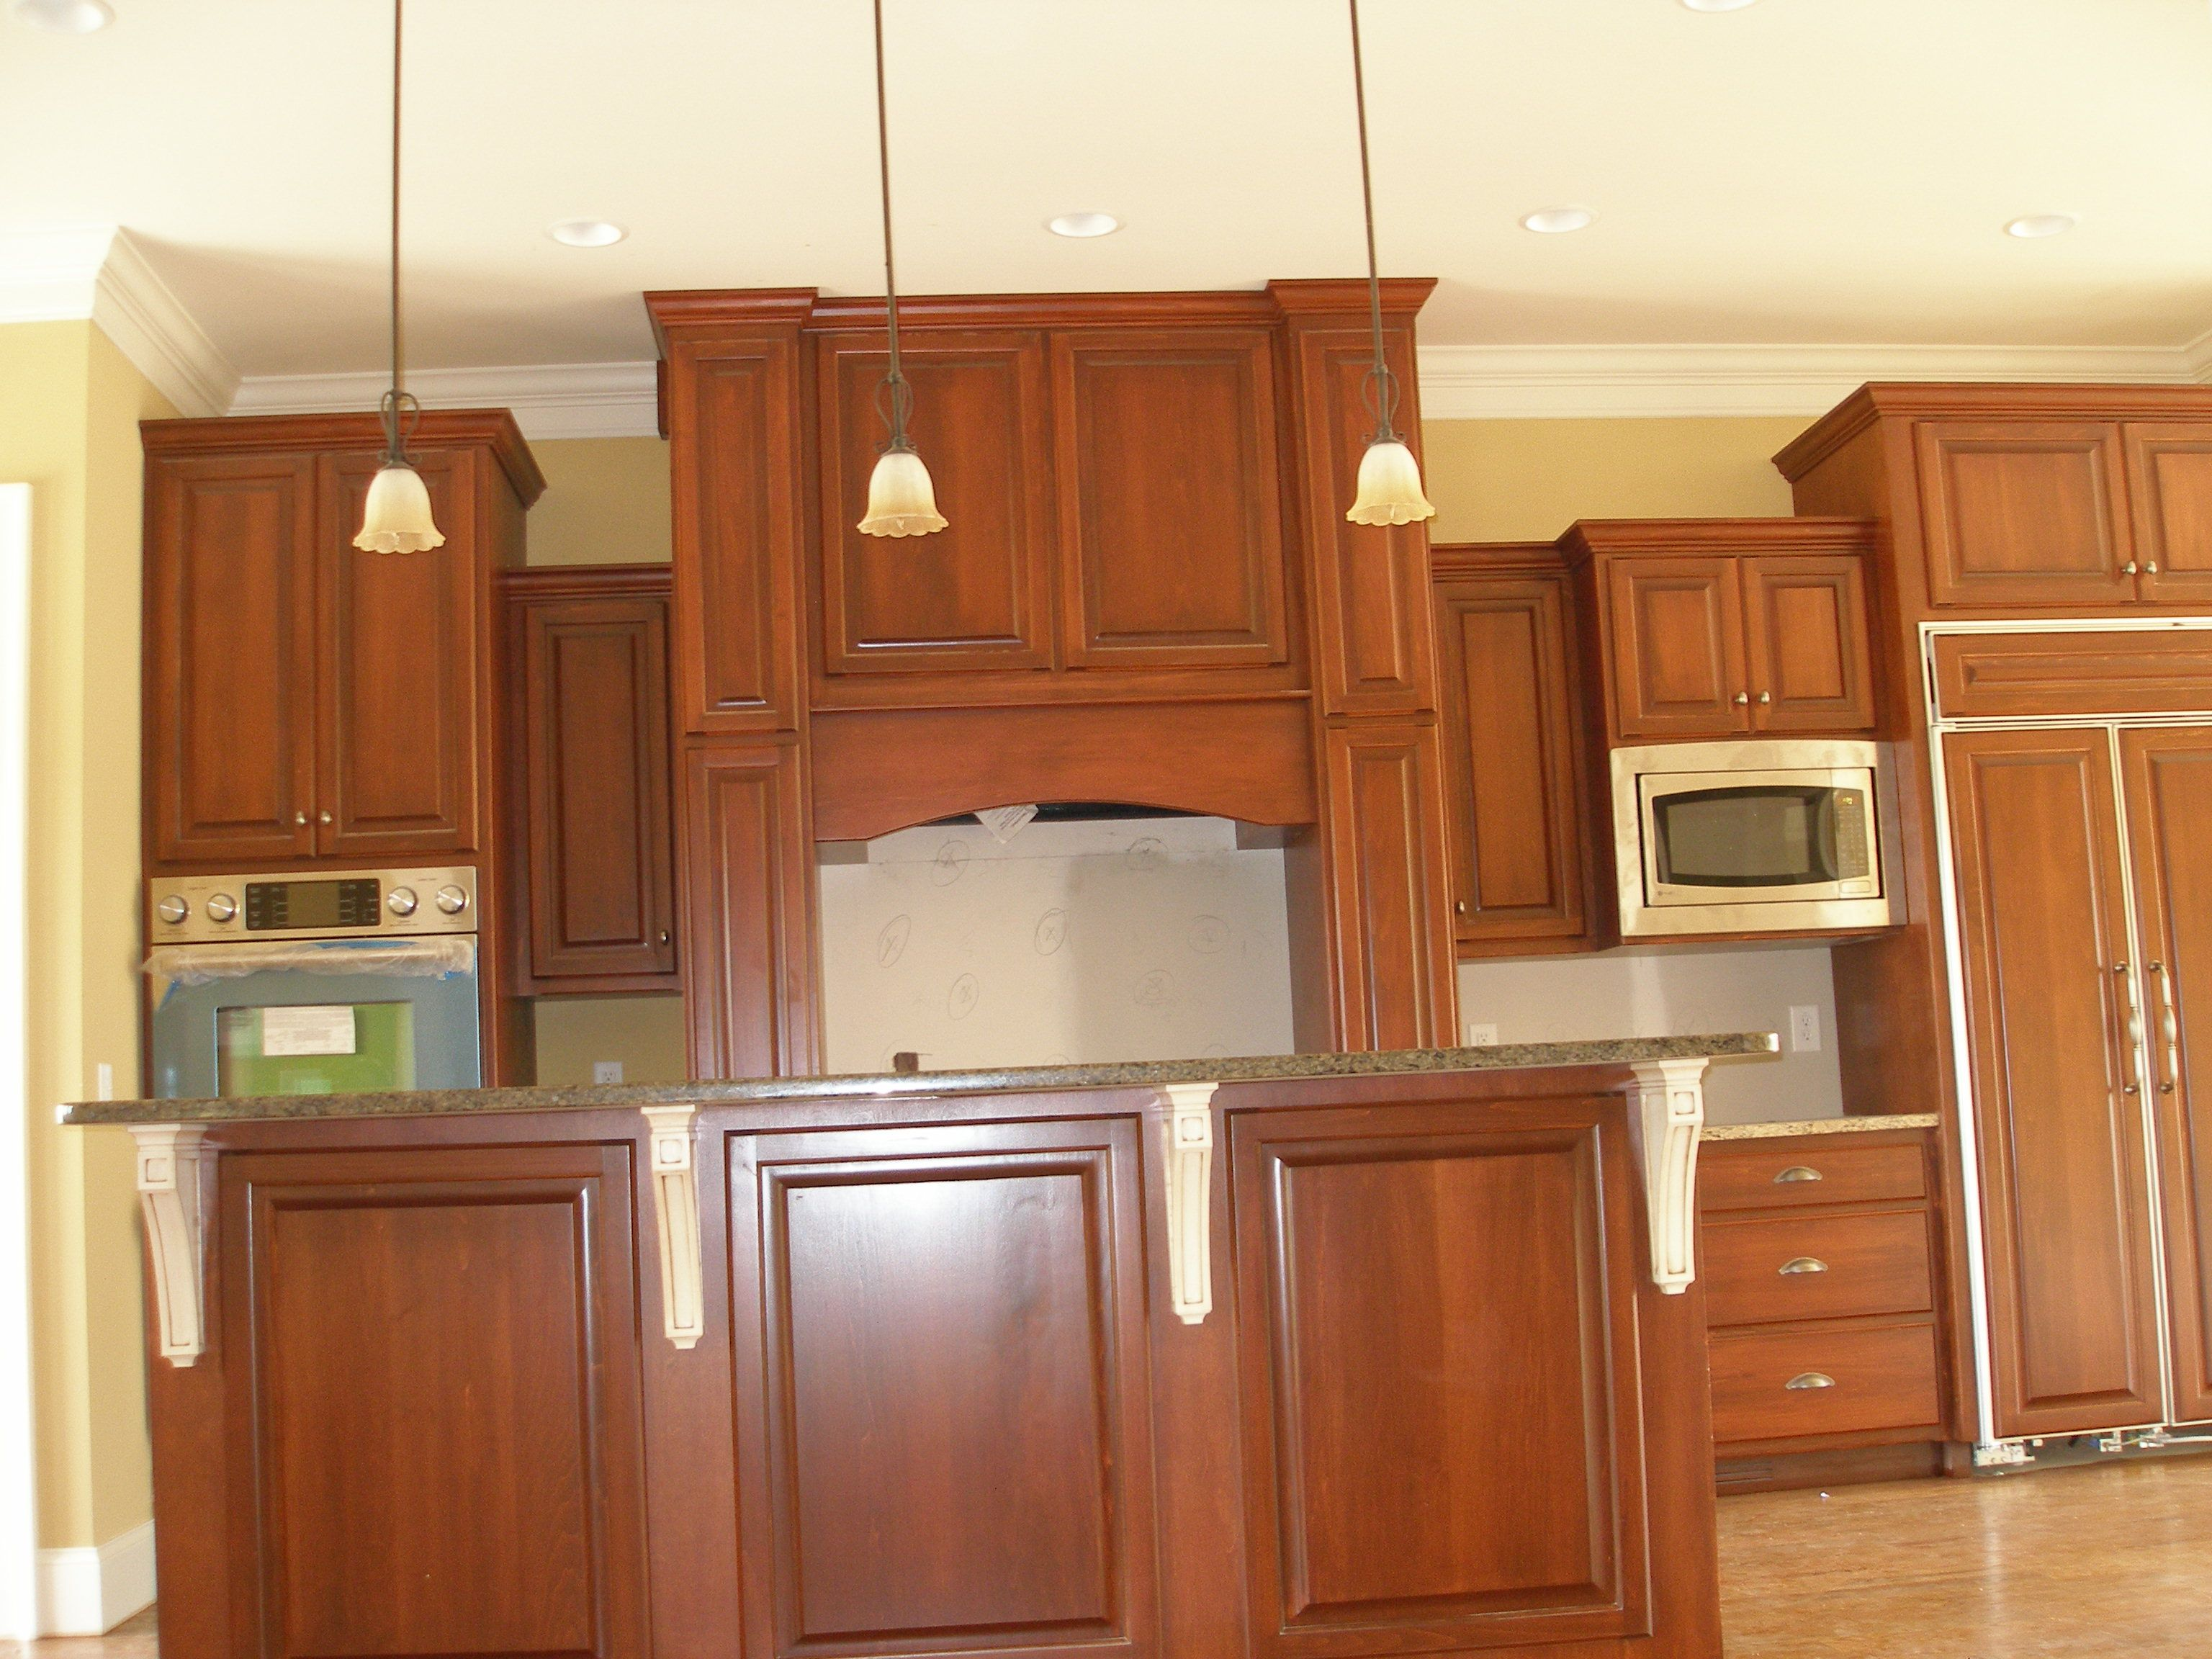 Interior Kitchen Cabinets Atlanta kitchen cabinets custom atlanta 678 608 3352 mcdonough ga cabinets